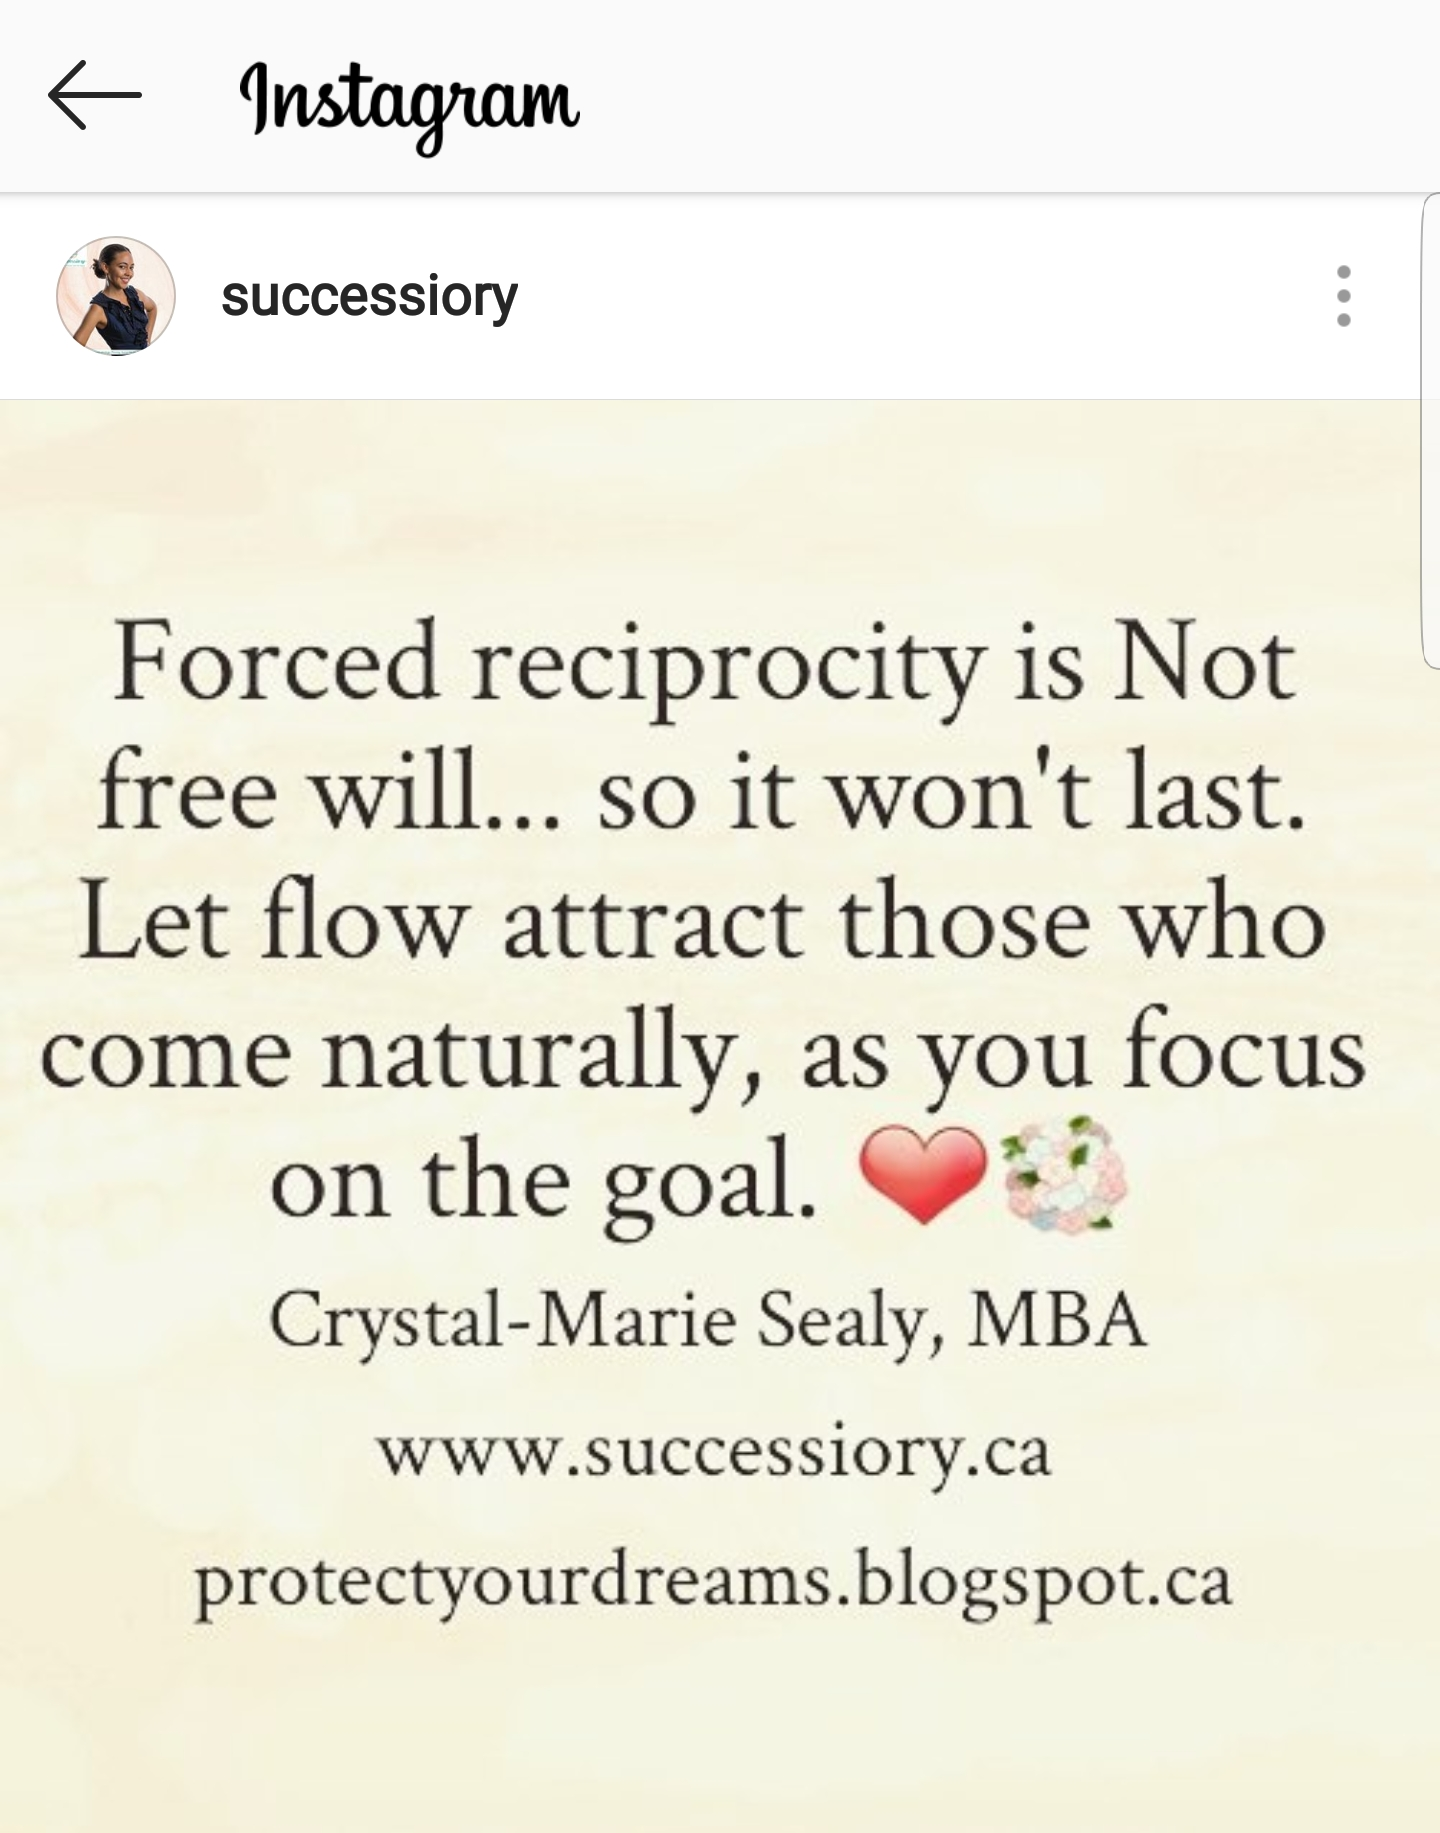 Forced reciprocity is Not free will. @Successiory